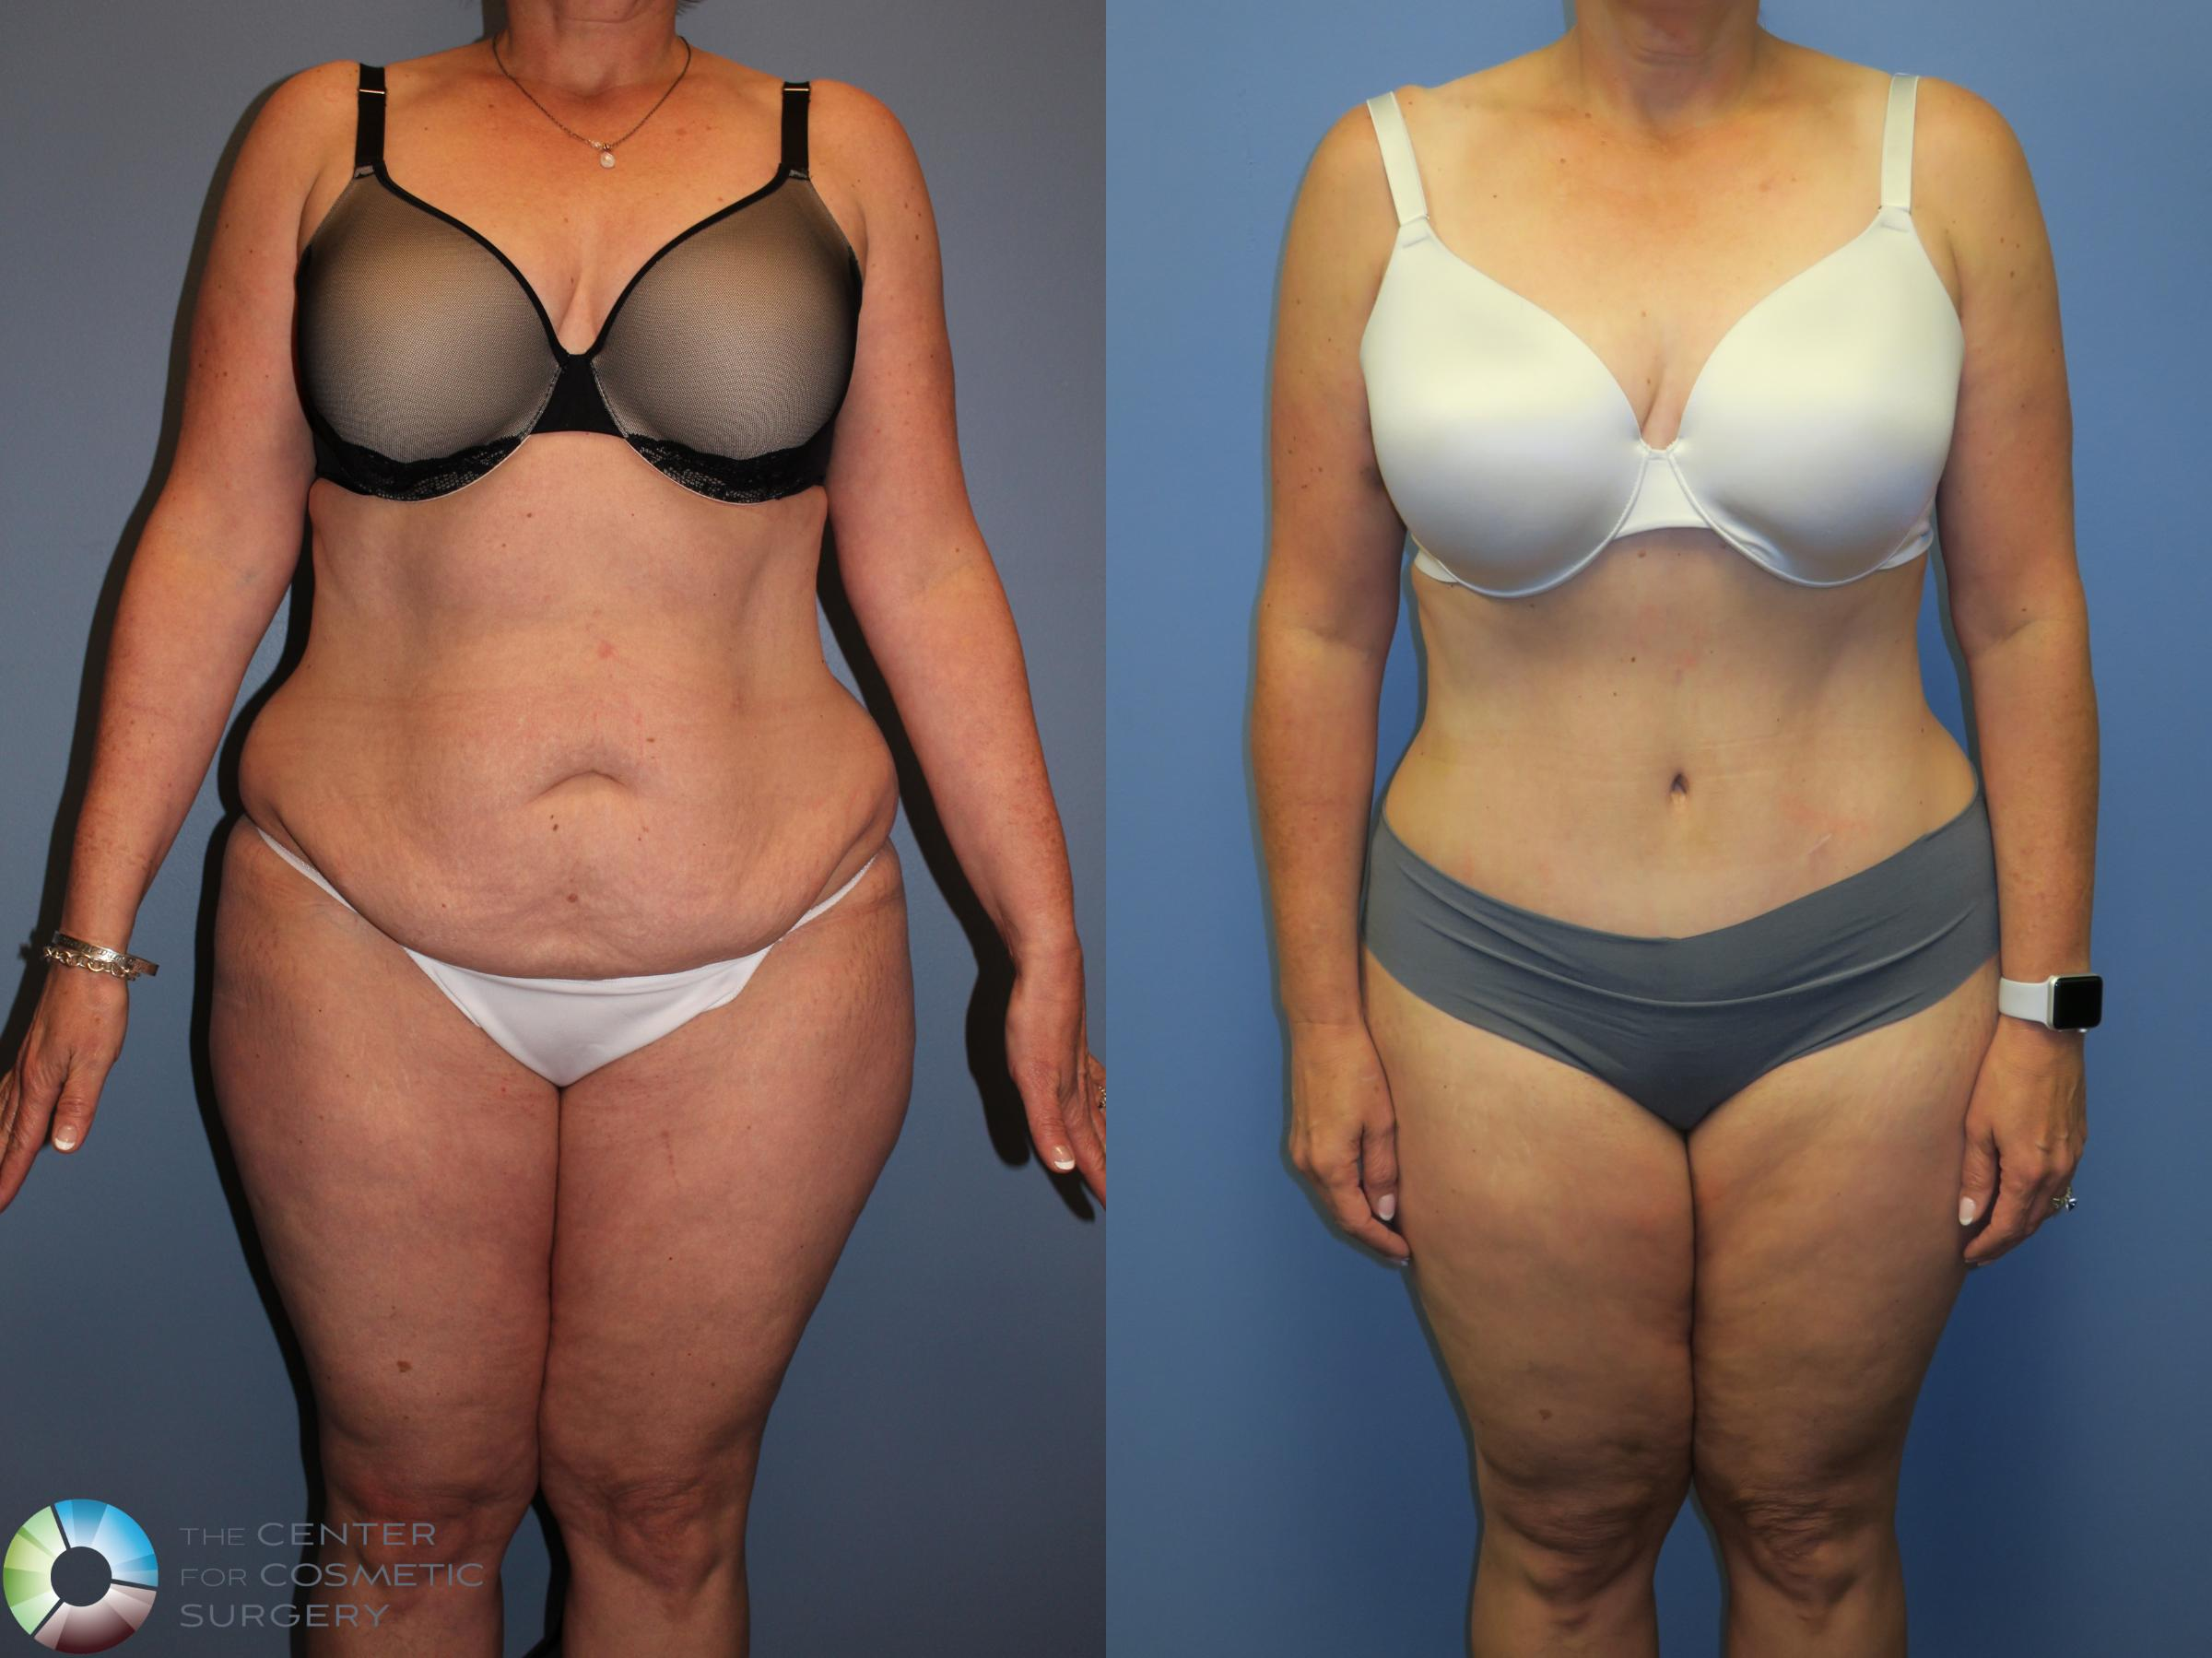 Tummy Tuck Abdominoplasty For Denver Colorado Springs The Center For Cosmetic Surgery